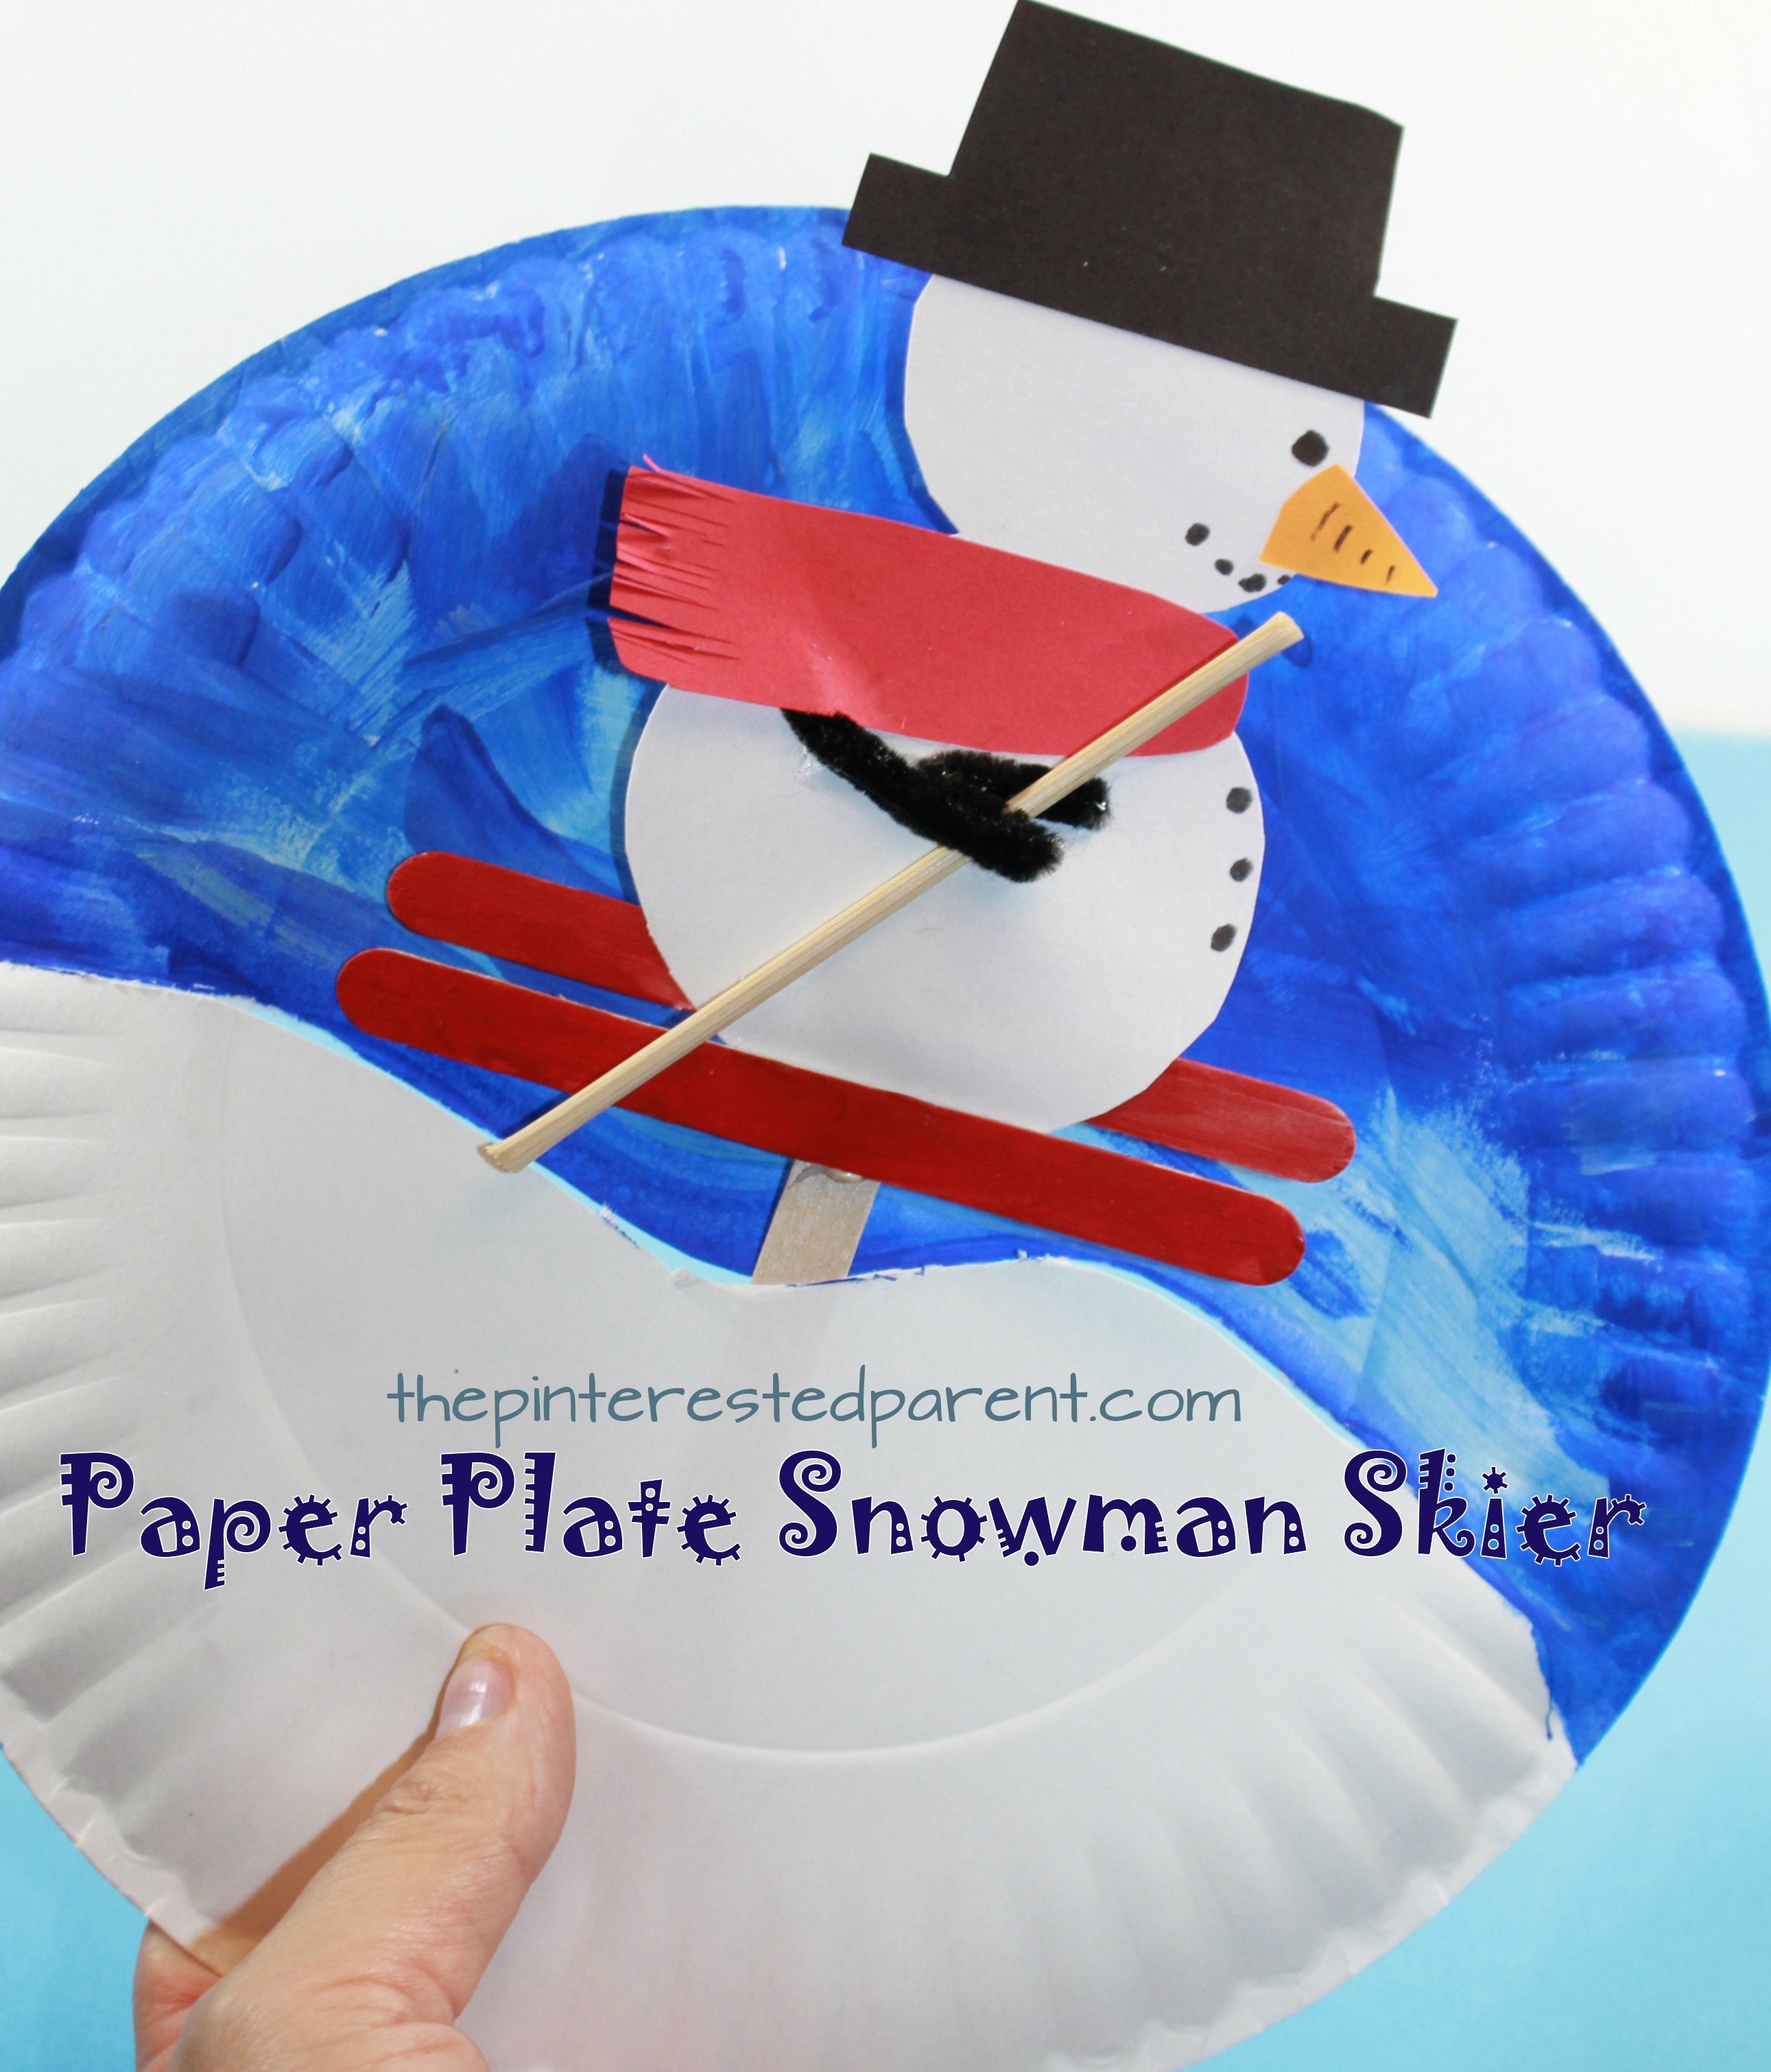 Paper plate snowman skier craft the pinterested parent paper plate snowman skier interactive arts and crafts project for the kids for the winter jeuxipadfo Gallery